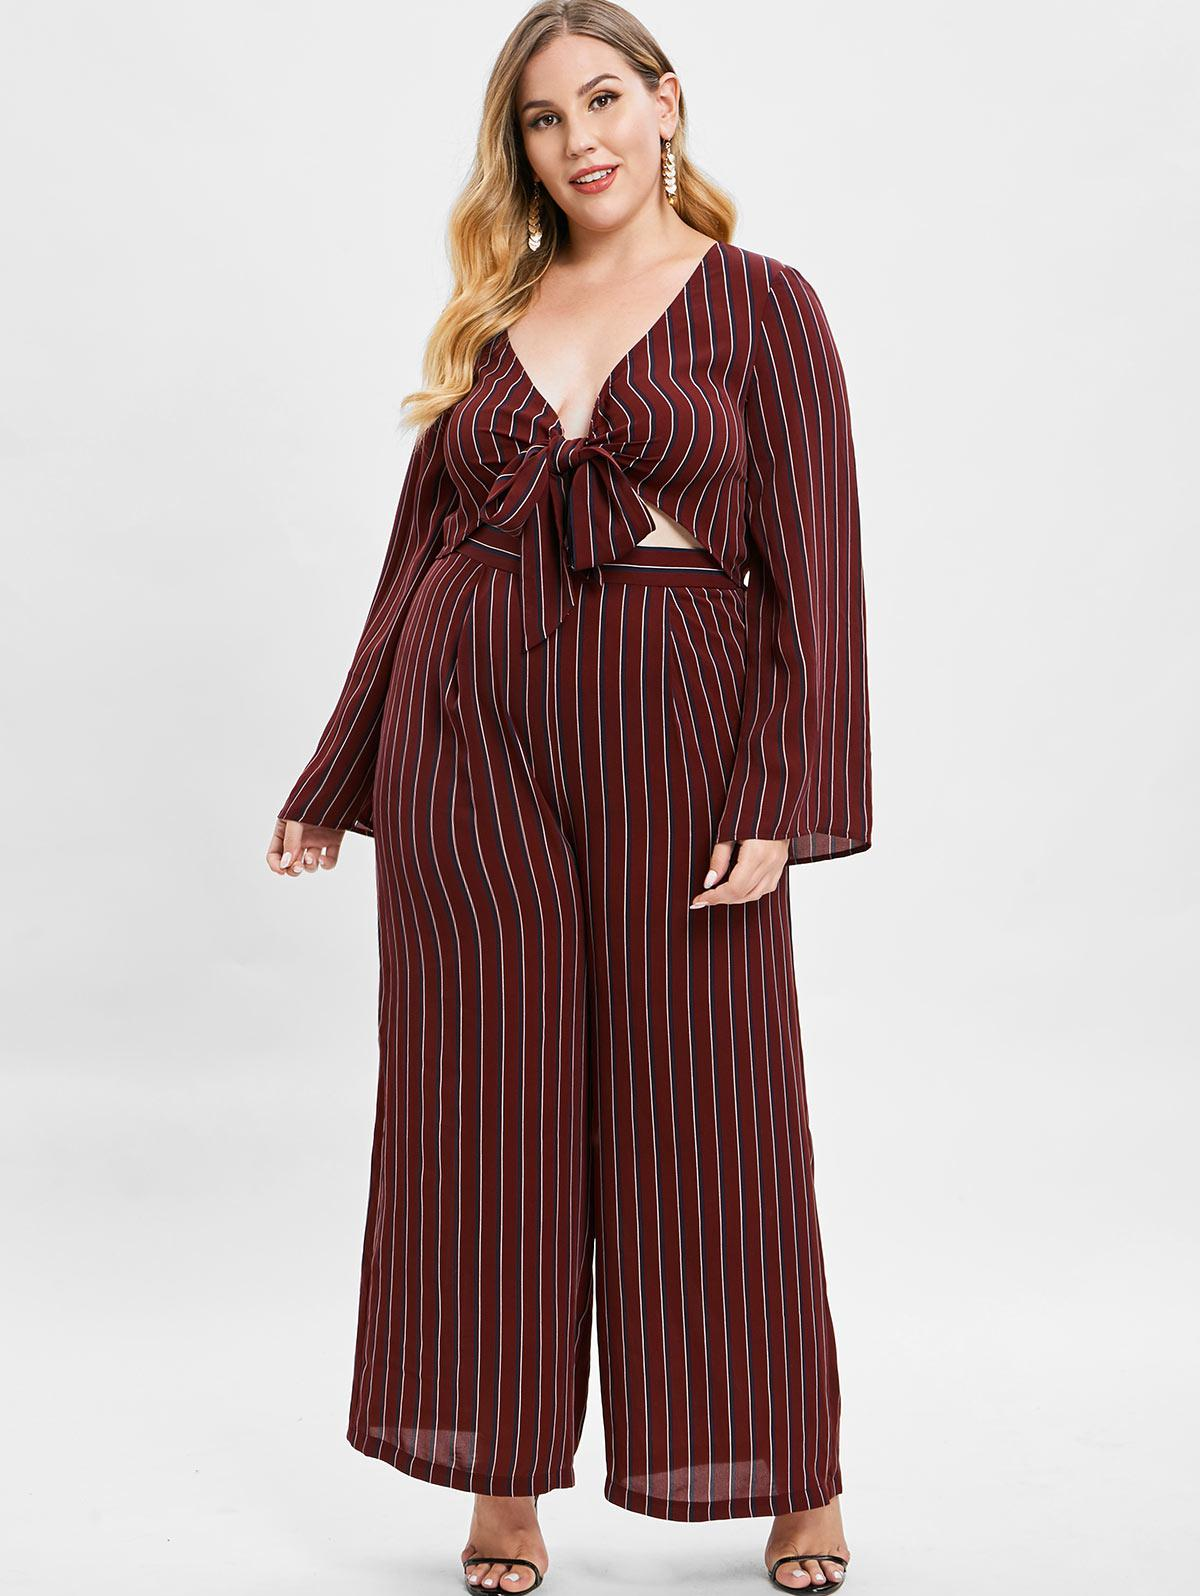 ZAFUL Striped Plus Size Blouse and Pants Set